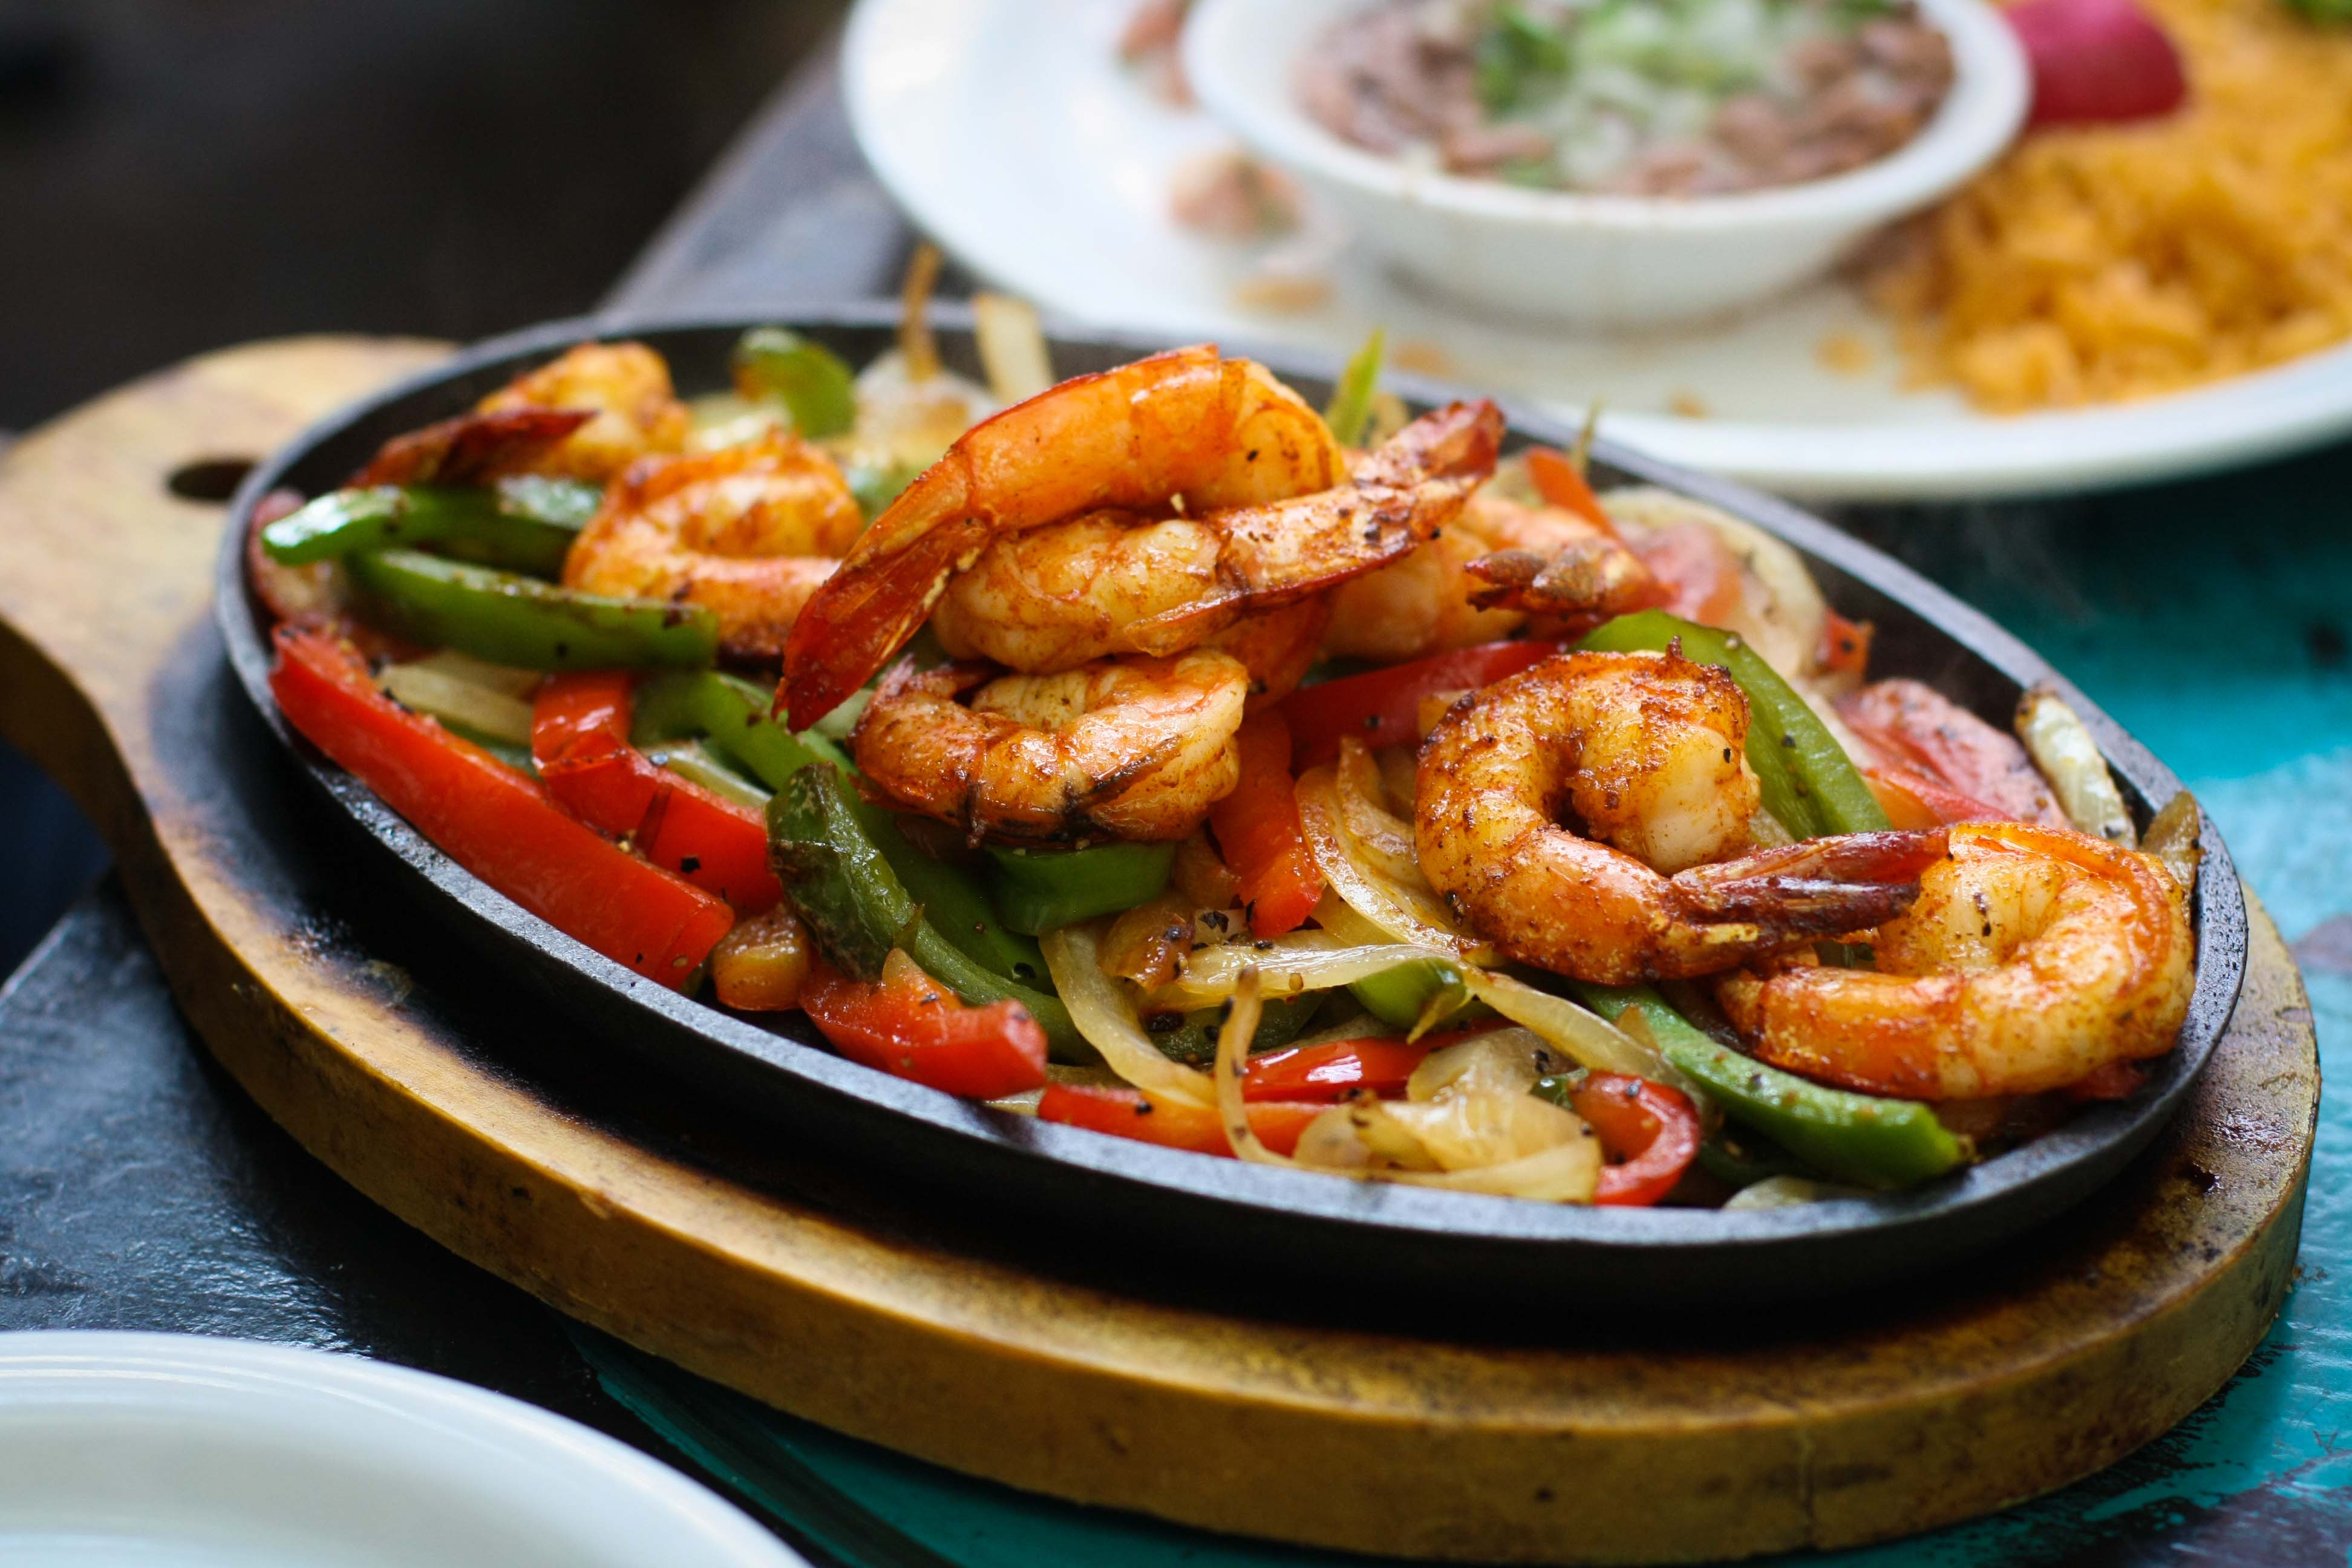 chicken fajitas chicken fajitas steak fajitas grilled steak fajitas ...